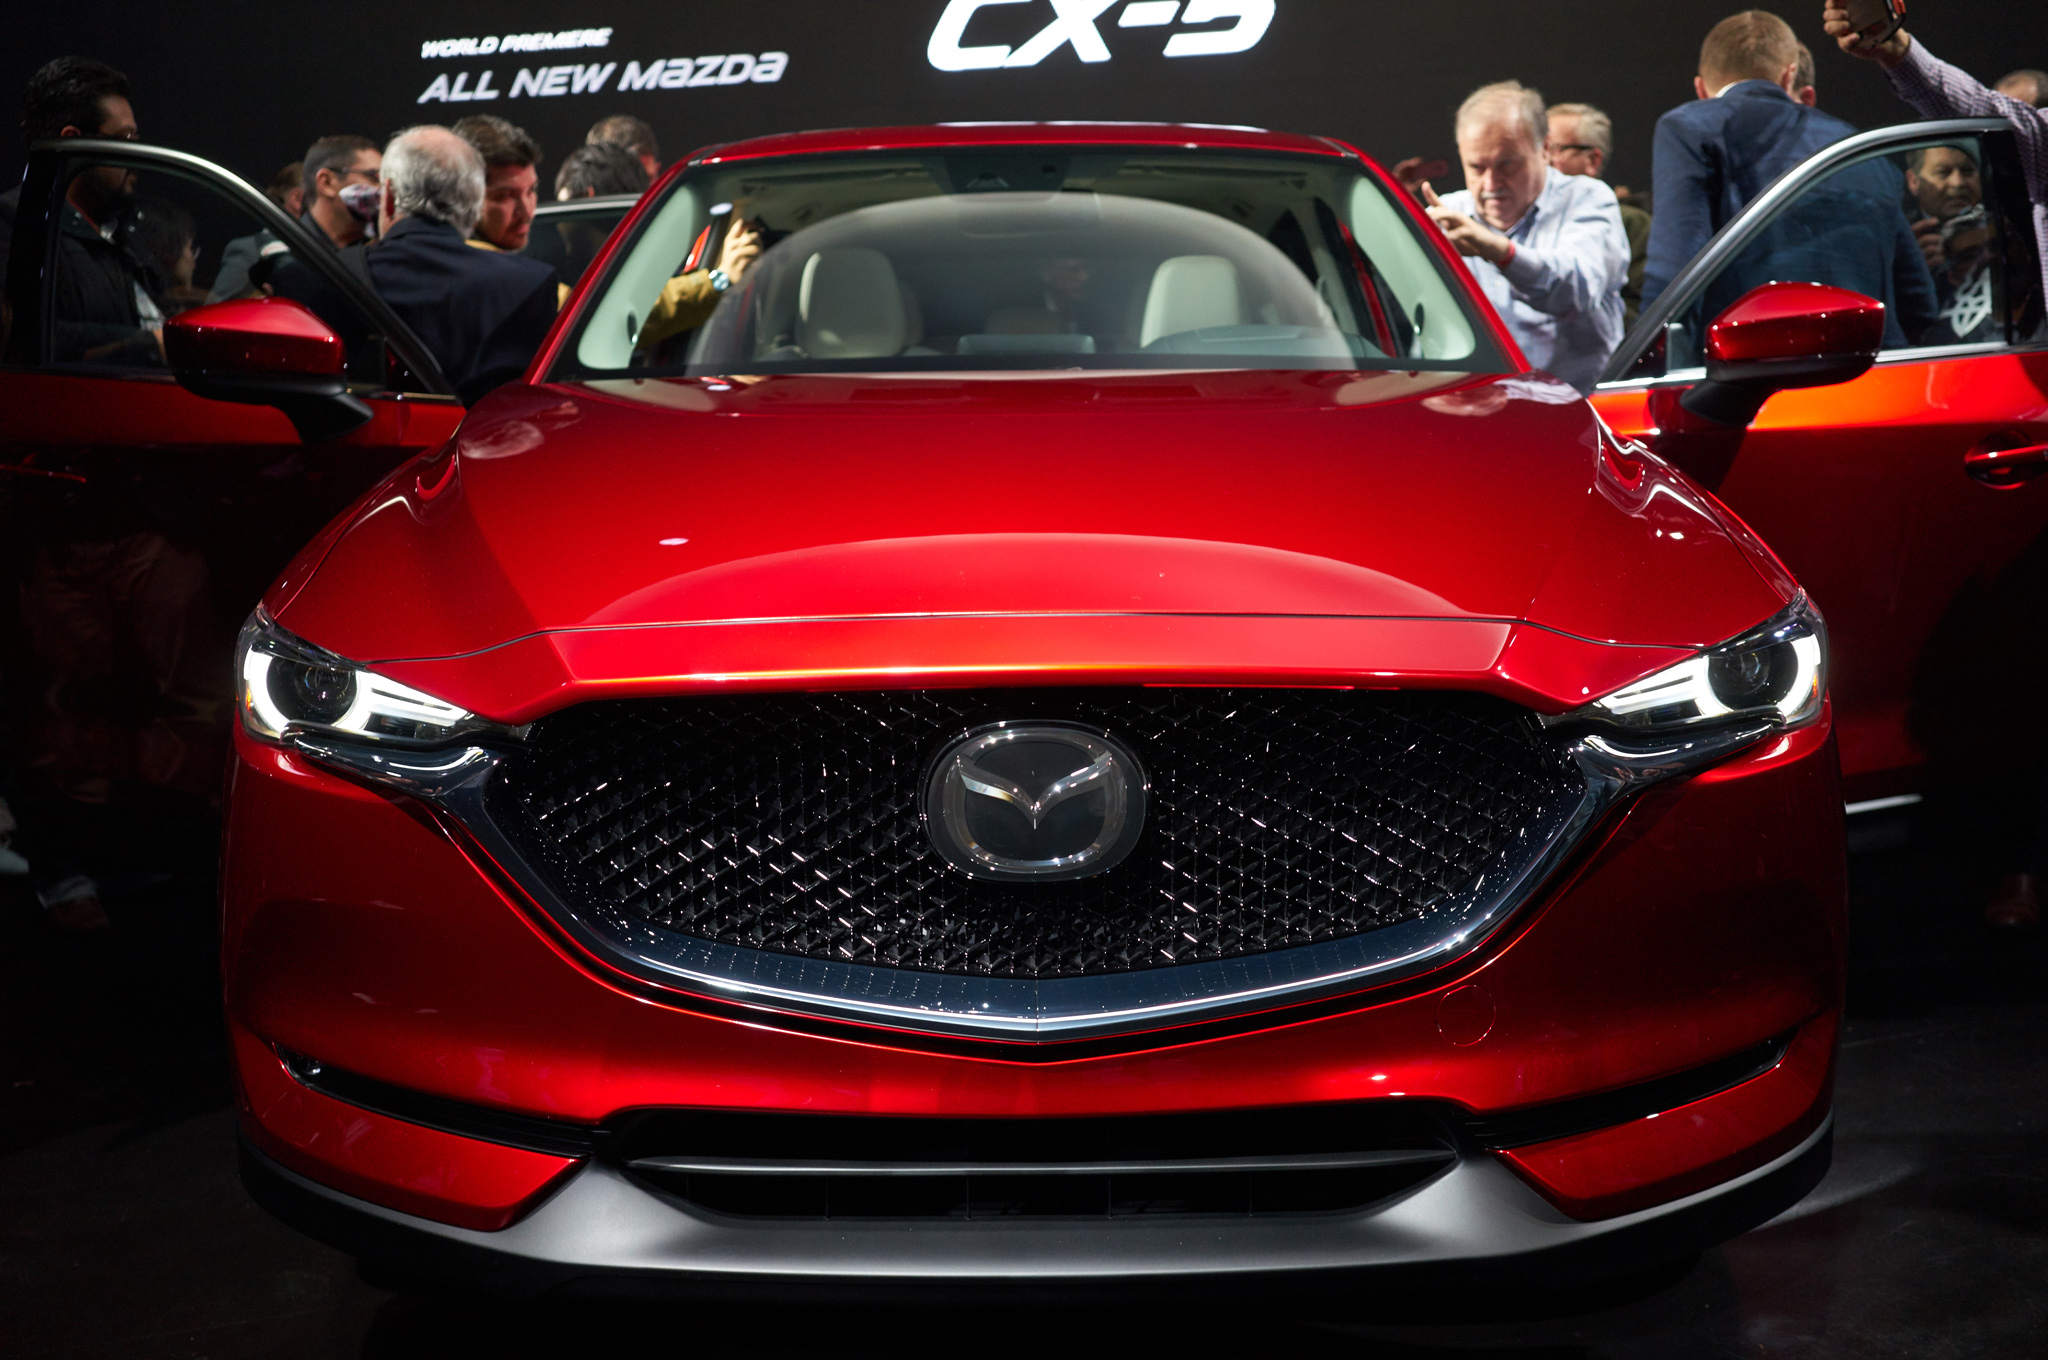 2017-mazda-cx-5-front-view